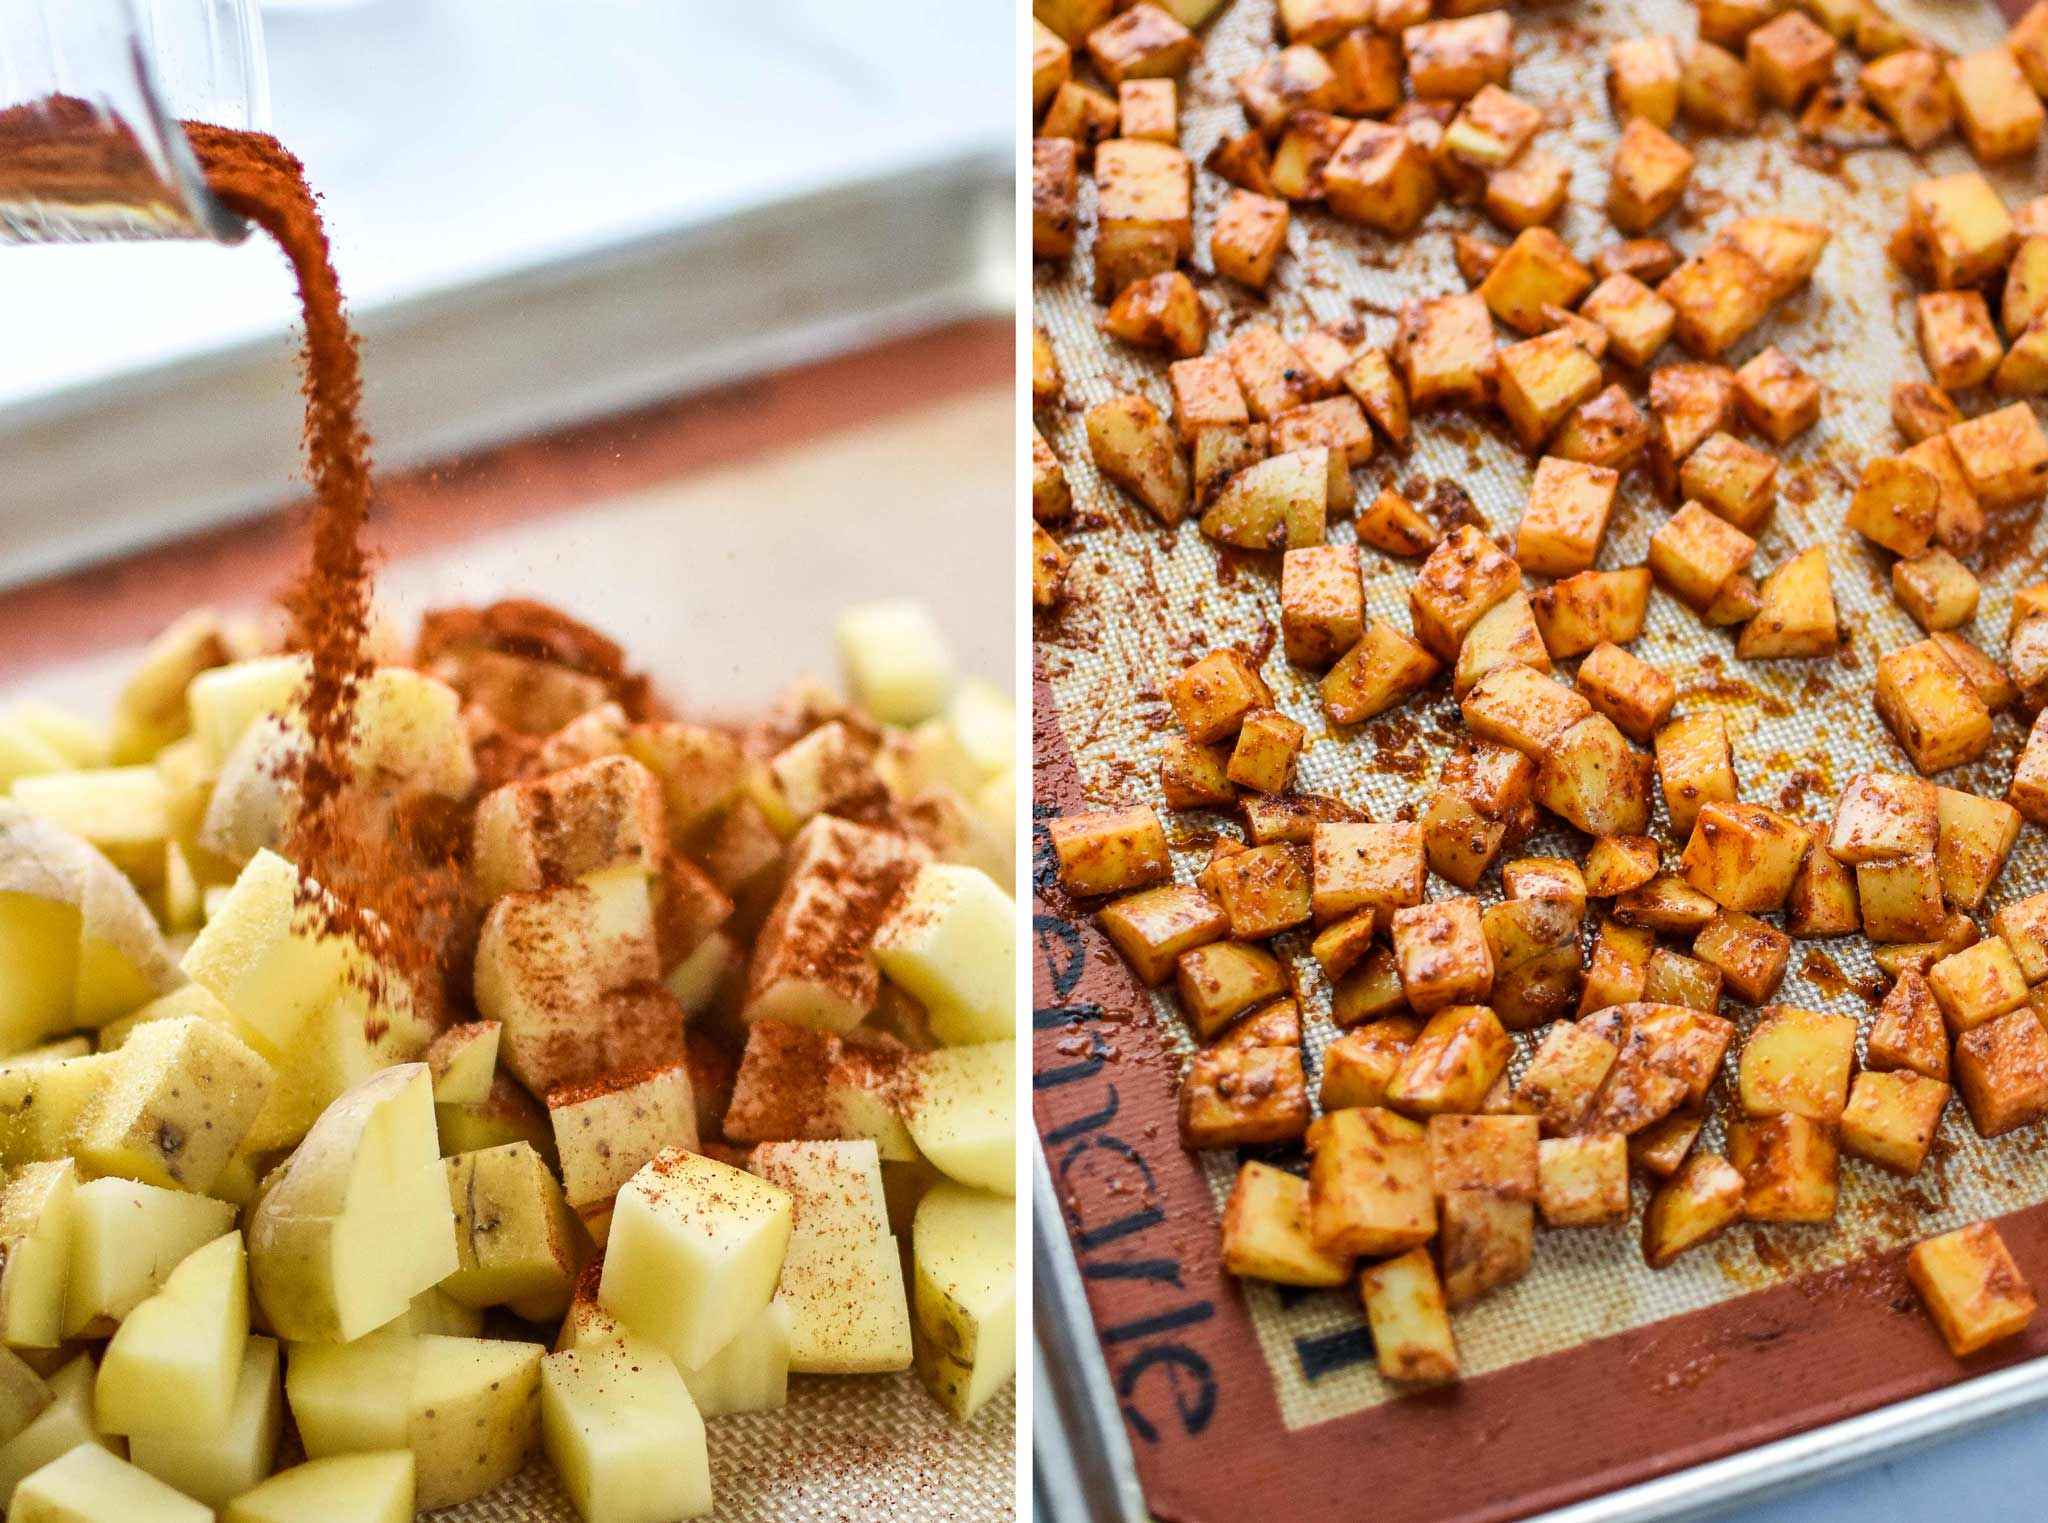 diced potatoes on a sheet pan with spices